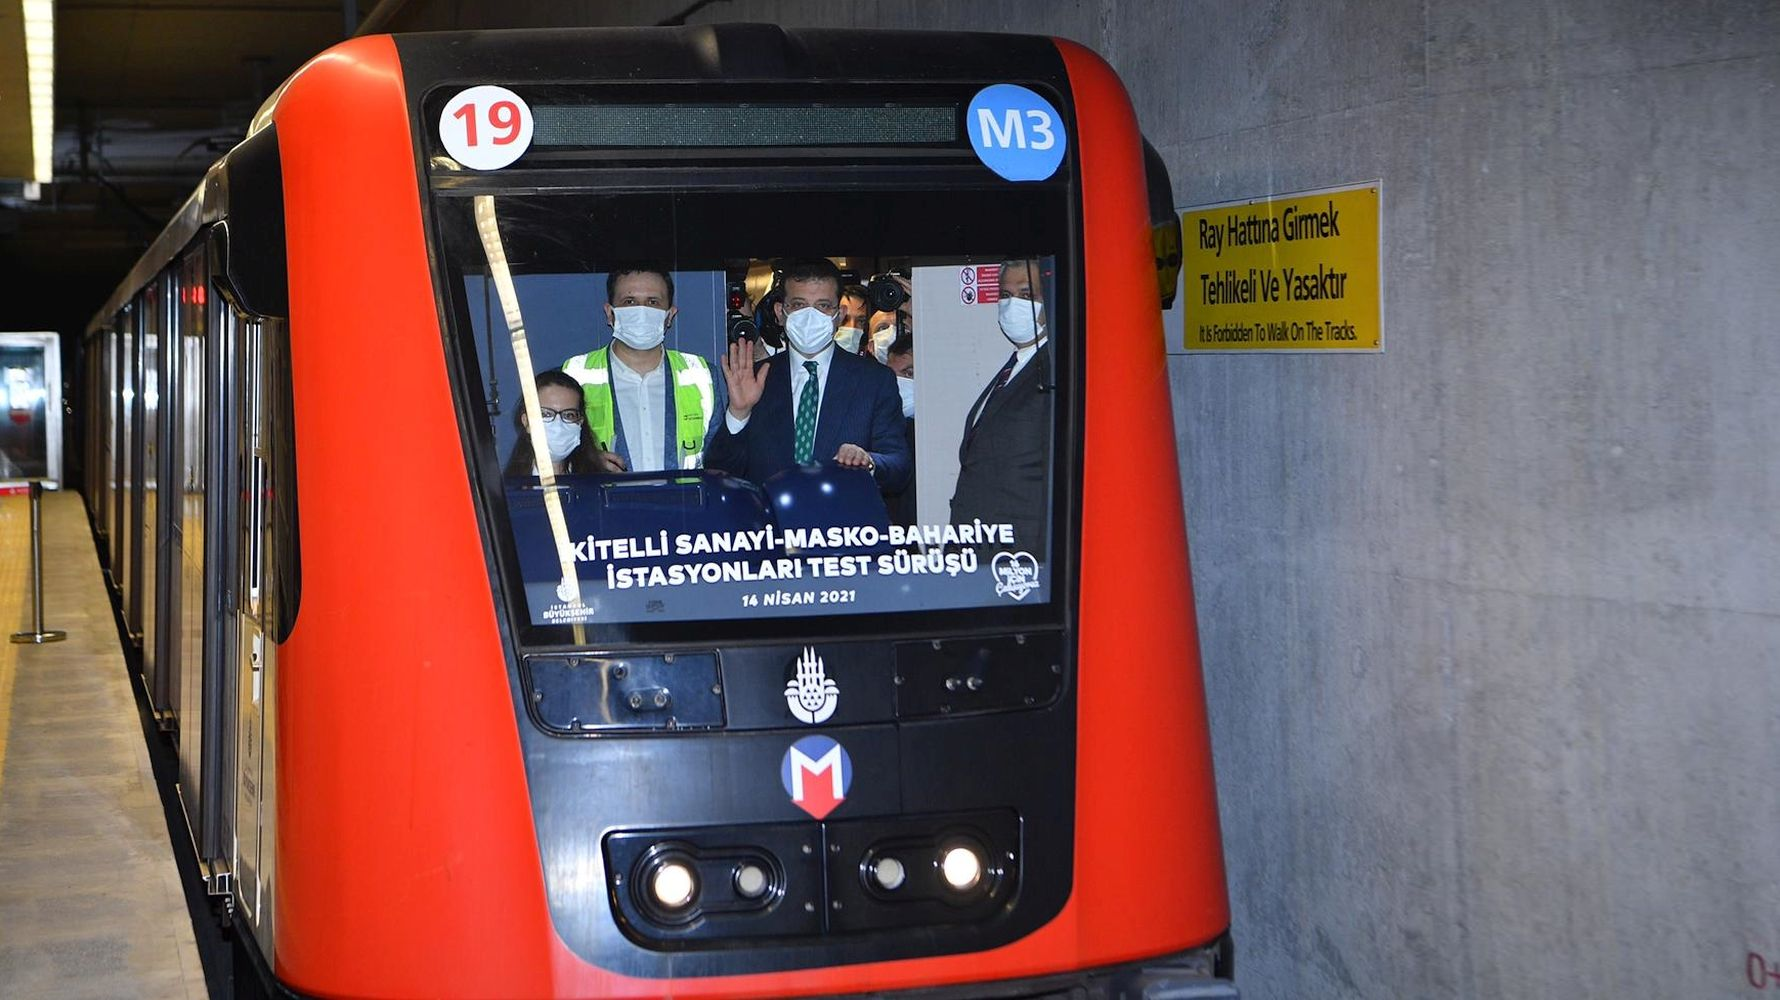 Atakoy ikitelli metro line station is put into service in May